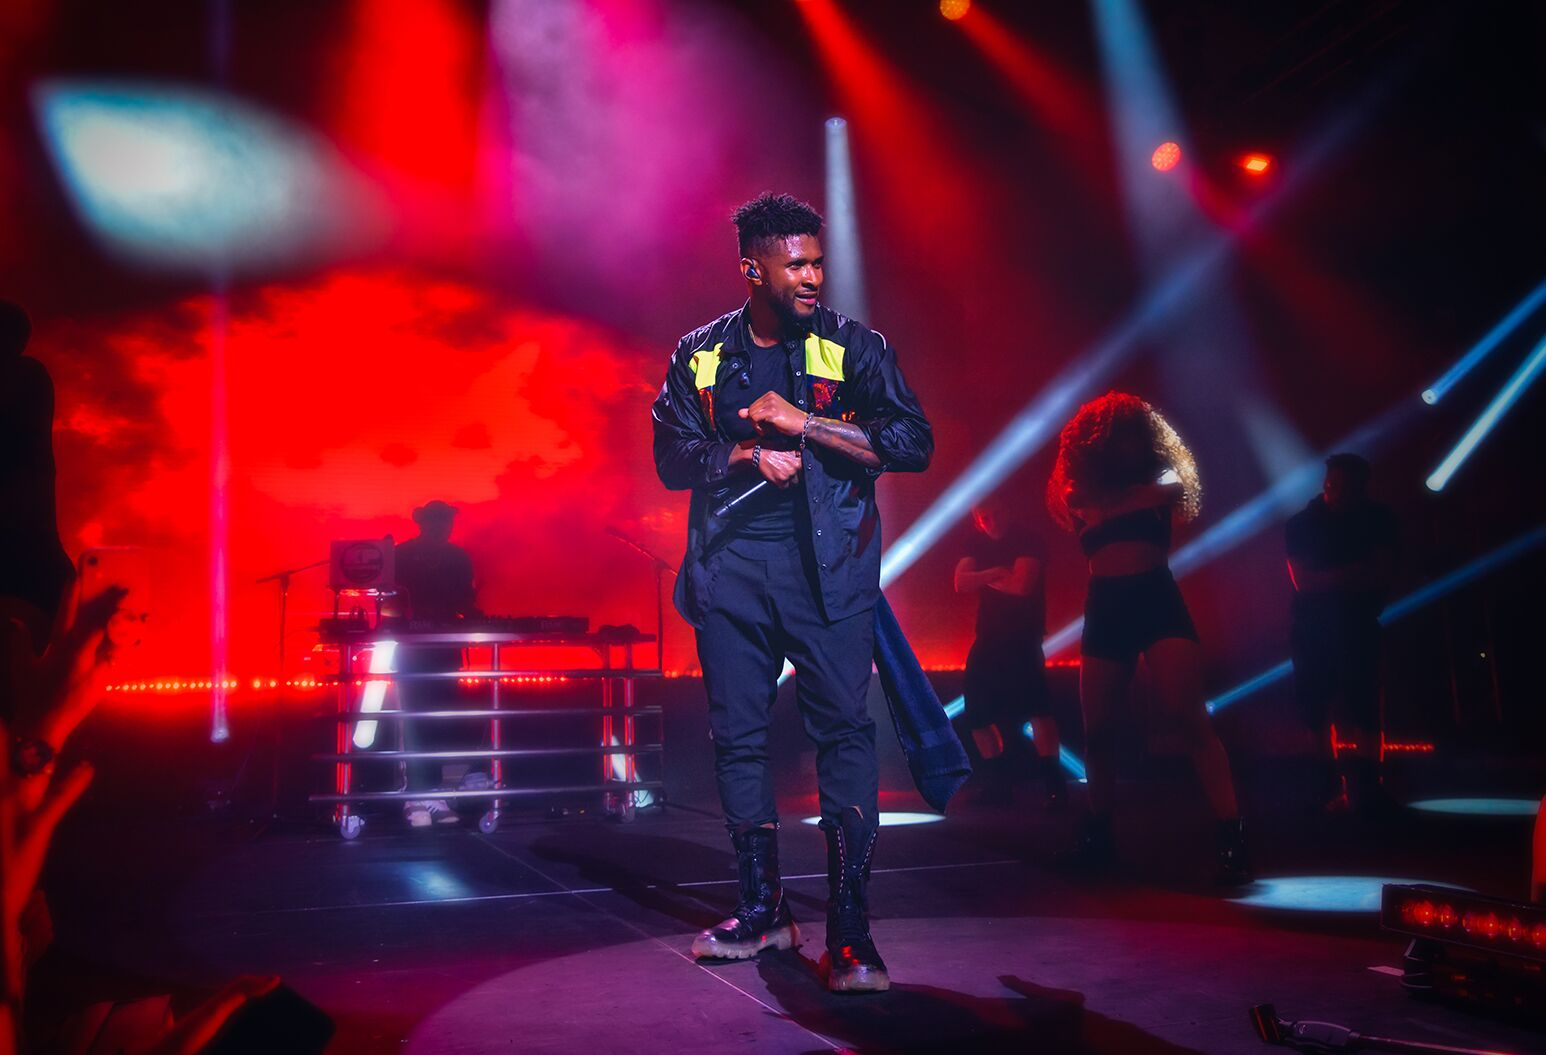 Usher helps raise millions for Northwell Health at private concert on LI